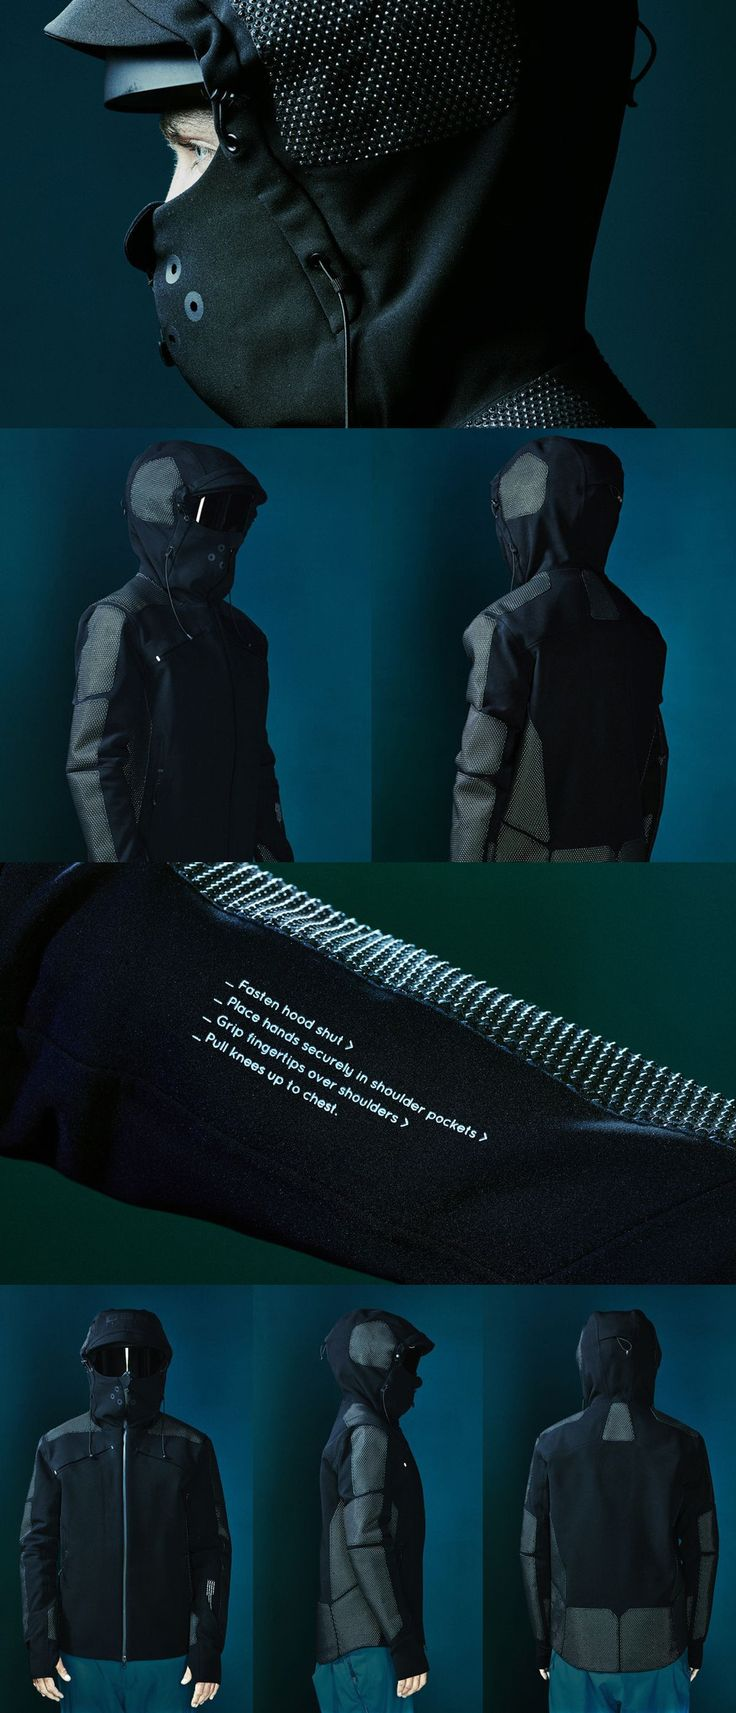 Vollebak Condition Black Jacket - The Condition Black Jacket incorporates 19 panels of ceraspace – an innovative protection fabric formed from 3D ceramic particles set in a flexible skin.